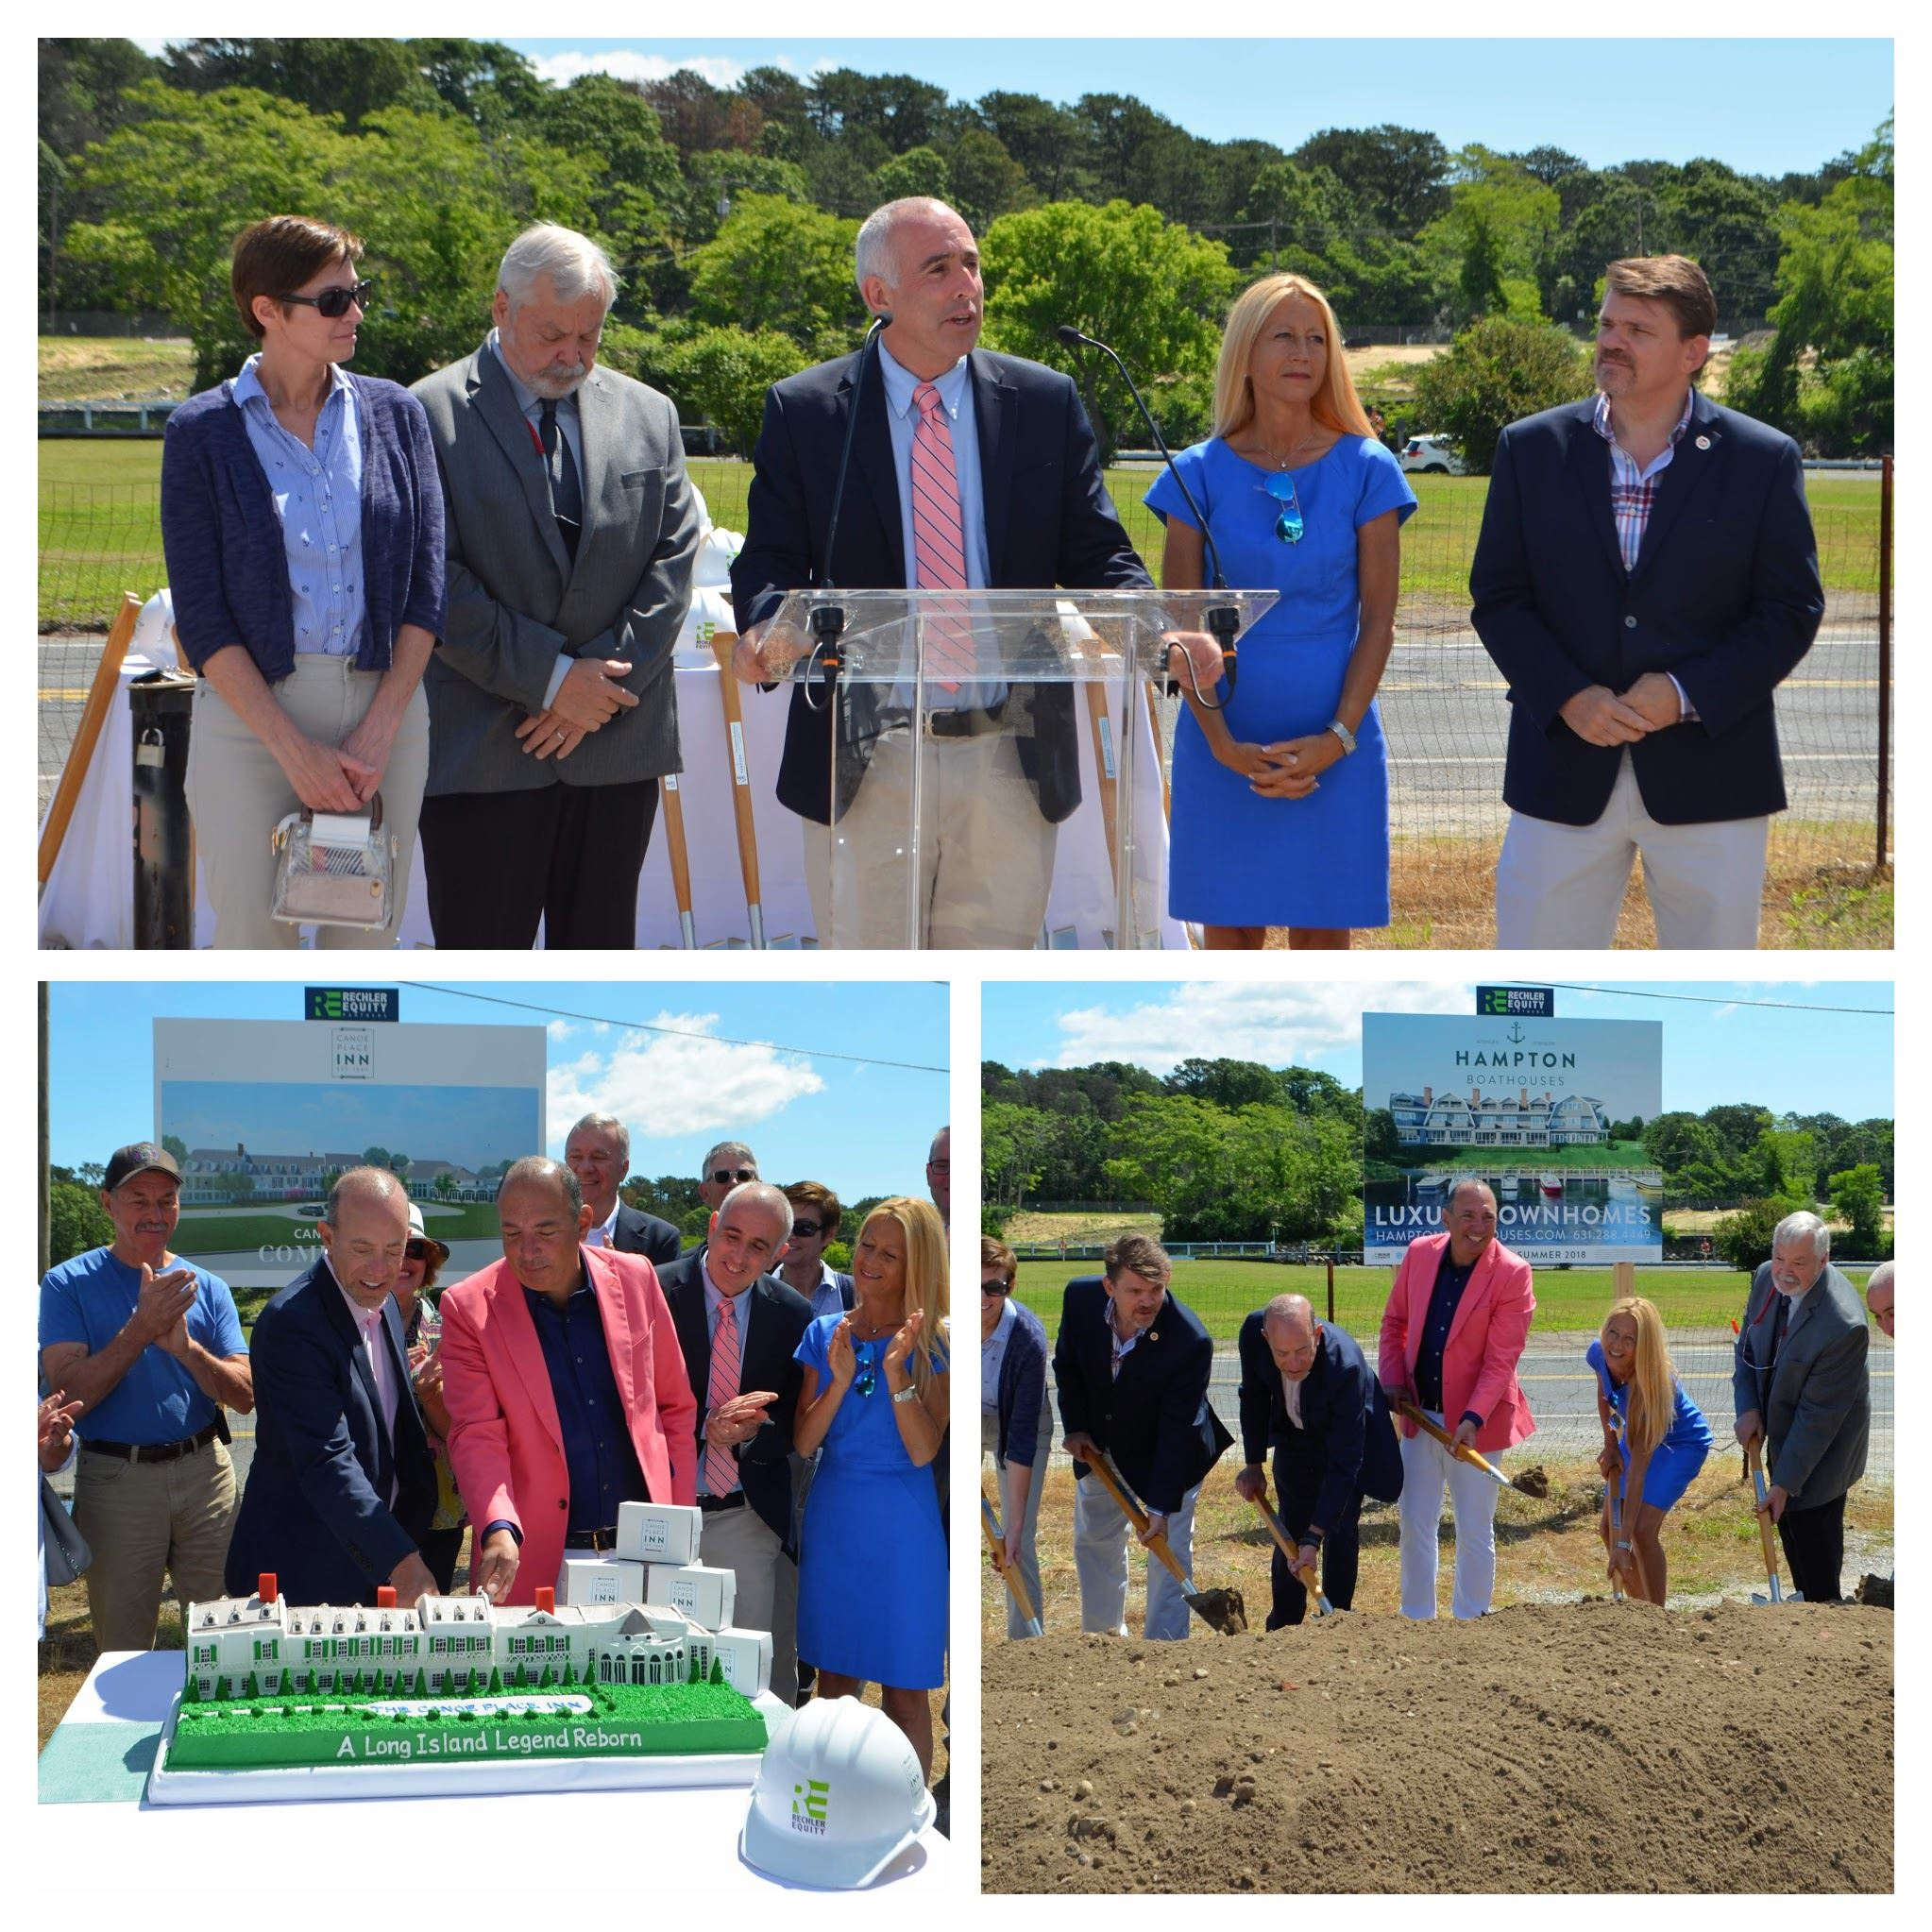 984f6b51fb5  ARCHIVED  Canoe Place Inn ground breaking ceremony Southampton Town Board  members joined Rechler Equity Partn